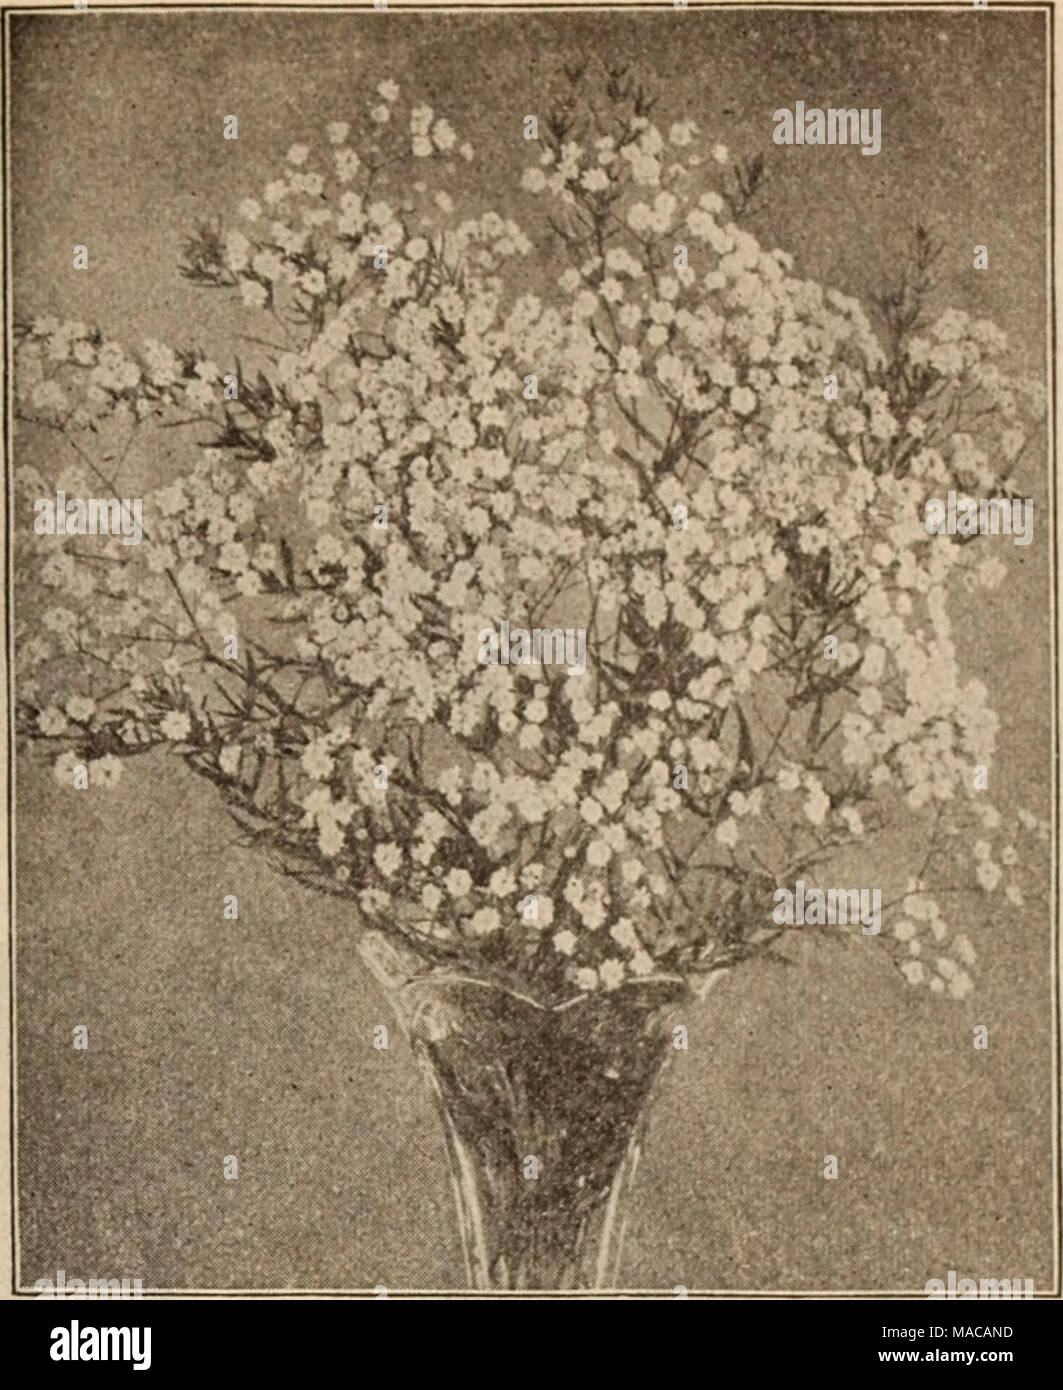 . Dreer's wholesale price list / Henry A. Dreer. . GYPSOPHILA PANICULATA FL. PL. Geum (Avens). Atrosanguinea. 3-inch pots 100 7 00 Coccineum. 3-inch pots 1 00 7 00 Heldreichi. 3-inch pots 1 00 7 00 Mrs. Bradshaw (New). 3-inch pots 1 50 10 00 Gillenia (Bowman's Root). Trifoliata 2 00 15 00 Glechoma or Nepeta. Variegata (Variegated Groundsel or Ground Ivy). 3-inch pots 85 6 00 Globularia. Tricosantha 2 00 15 00 Gunnera. Scabra. Fine strong plants in 5-inch pots of this grand foliage plant. 35 cents each; $3.50 per dozen. ORNAMENTAL GRASSES AND BAMBOOS. These are now used very extensively for bed Stock Photo